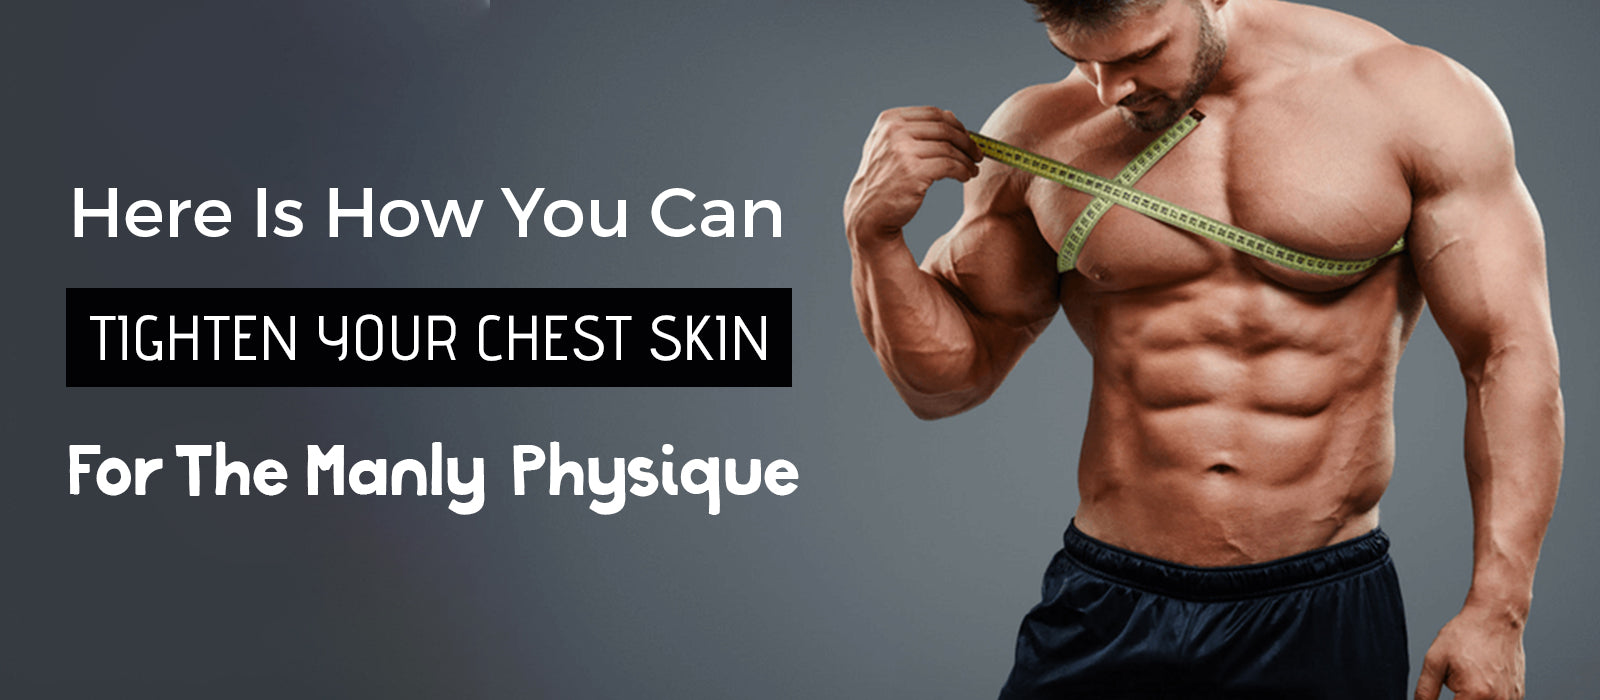 Here Is How You Can Tighten Your Chest Skin For The Manly Physique